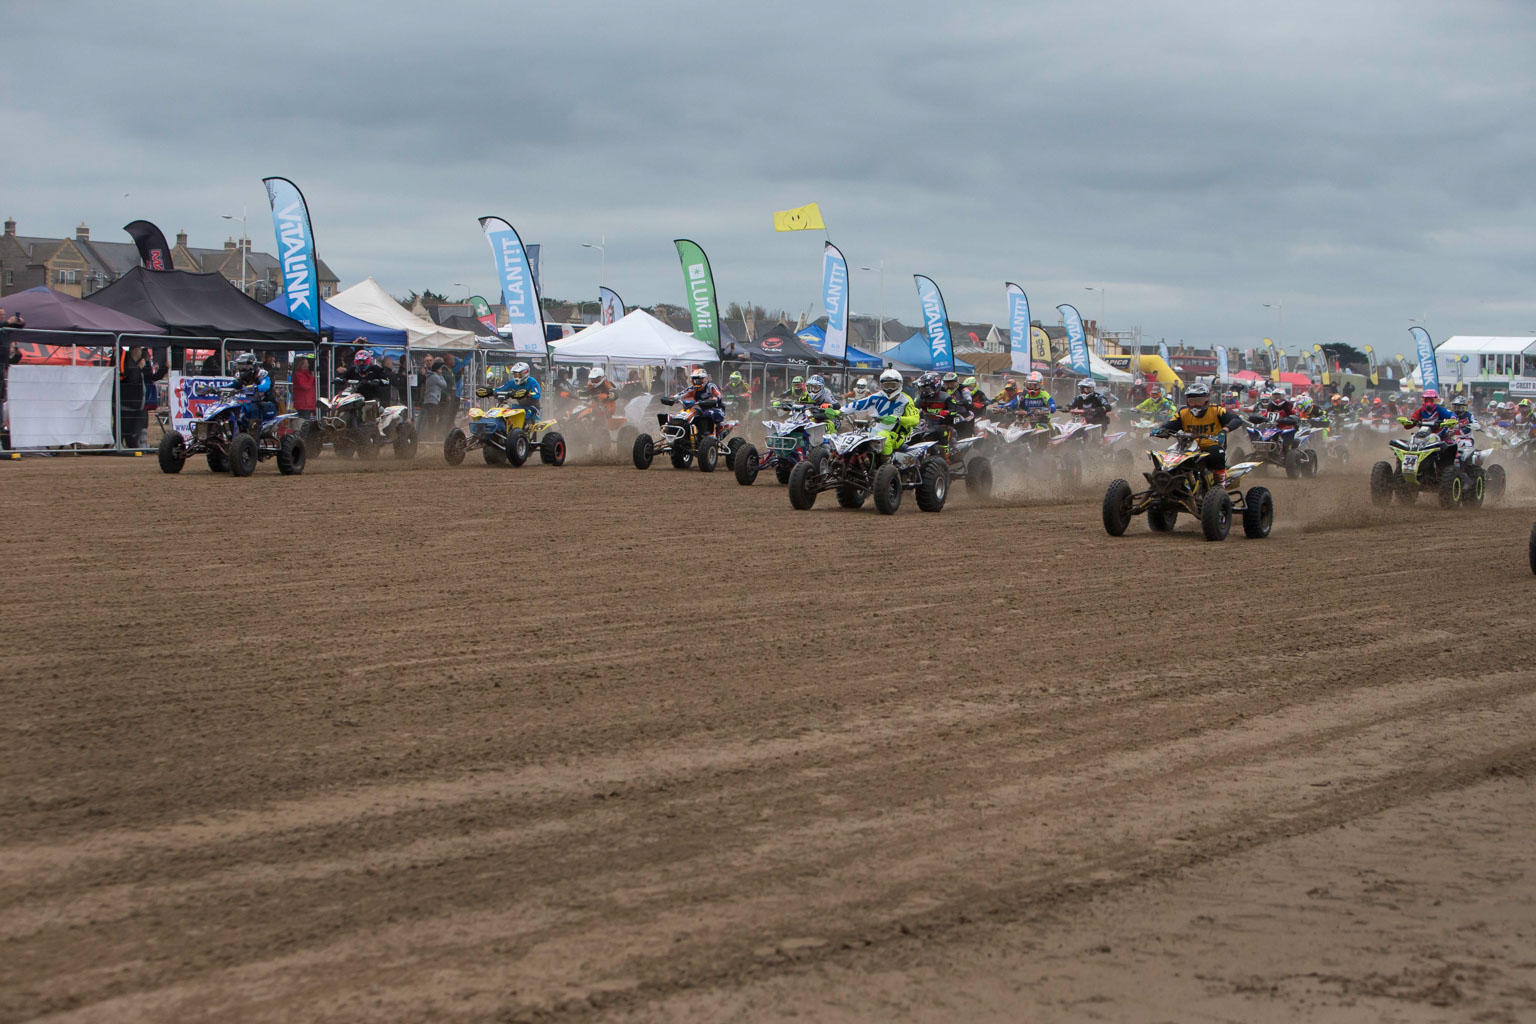 The start of the quads / sidecars